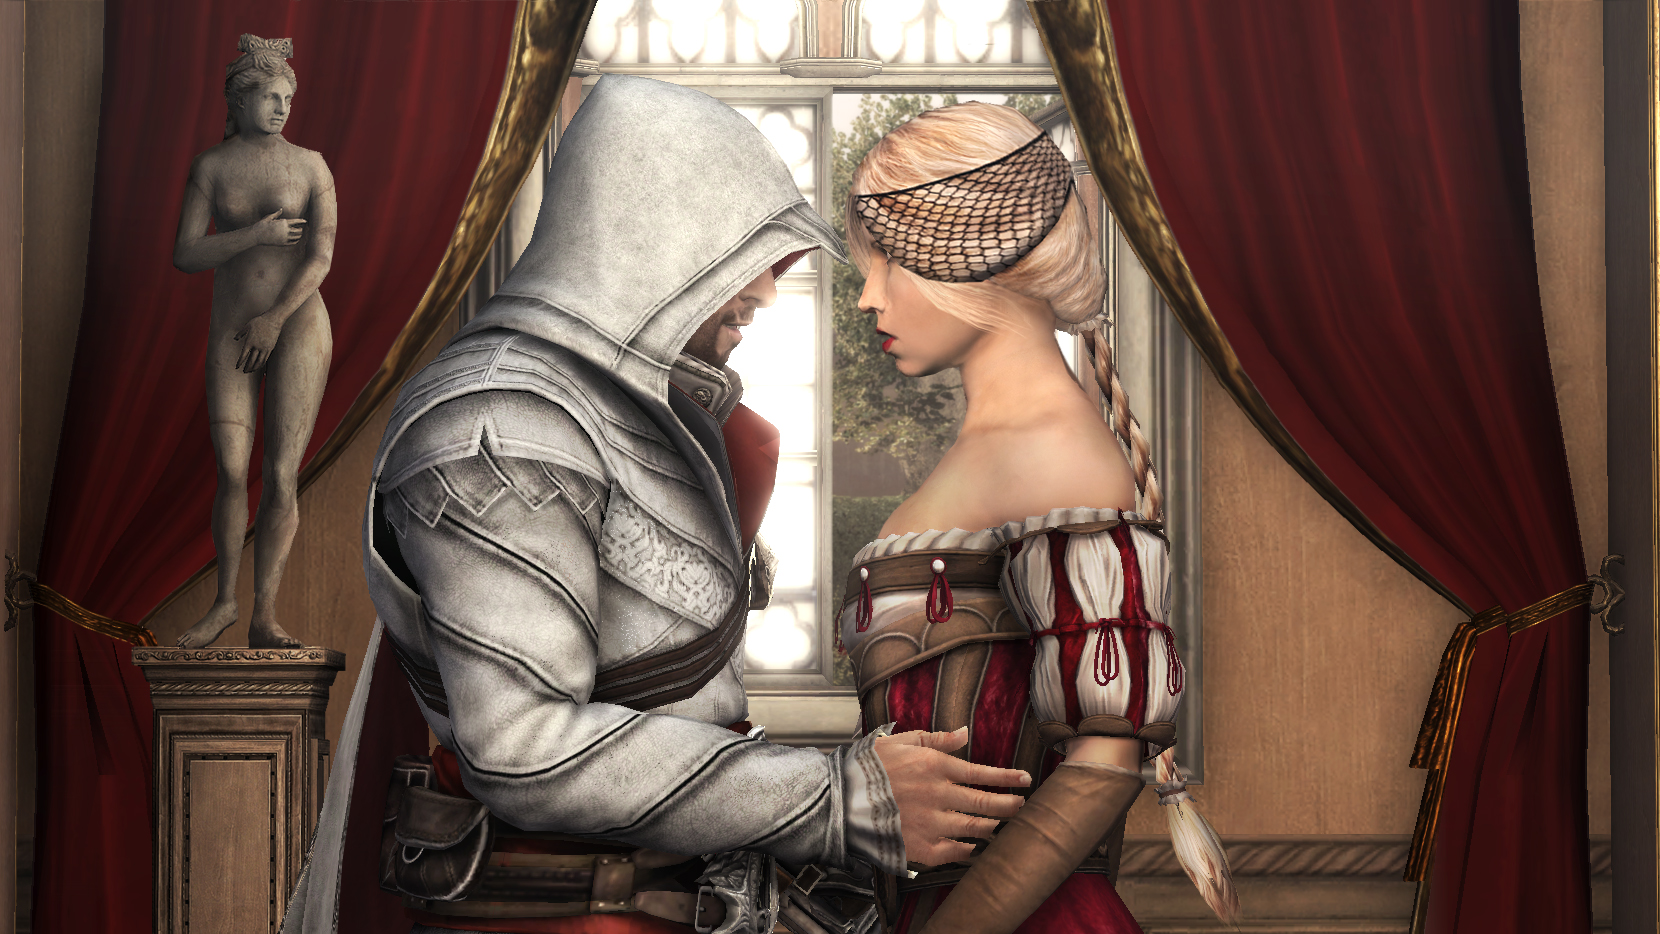 Assassin's creed brotherhood nude girl erotic film